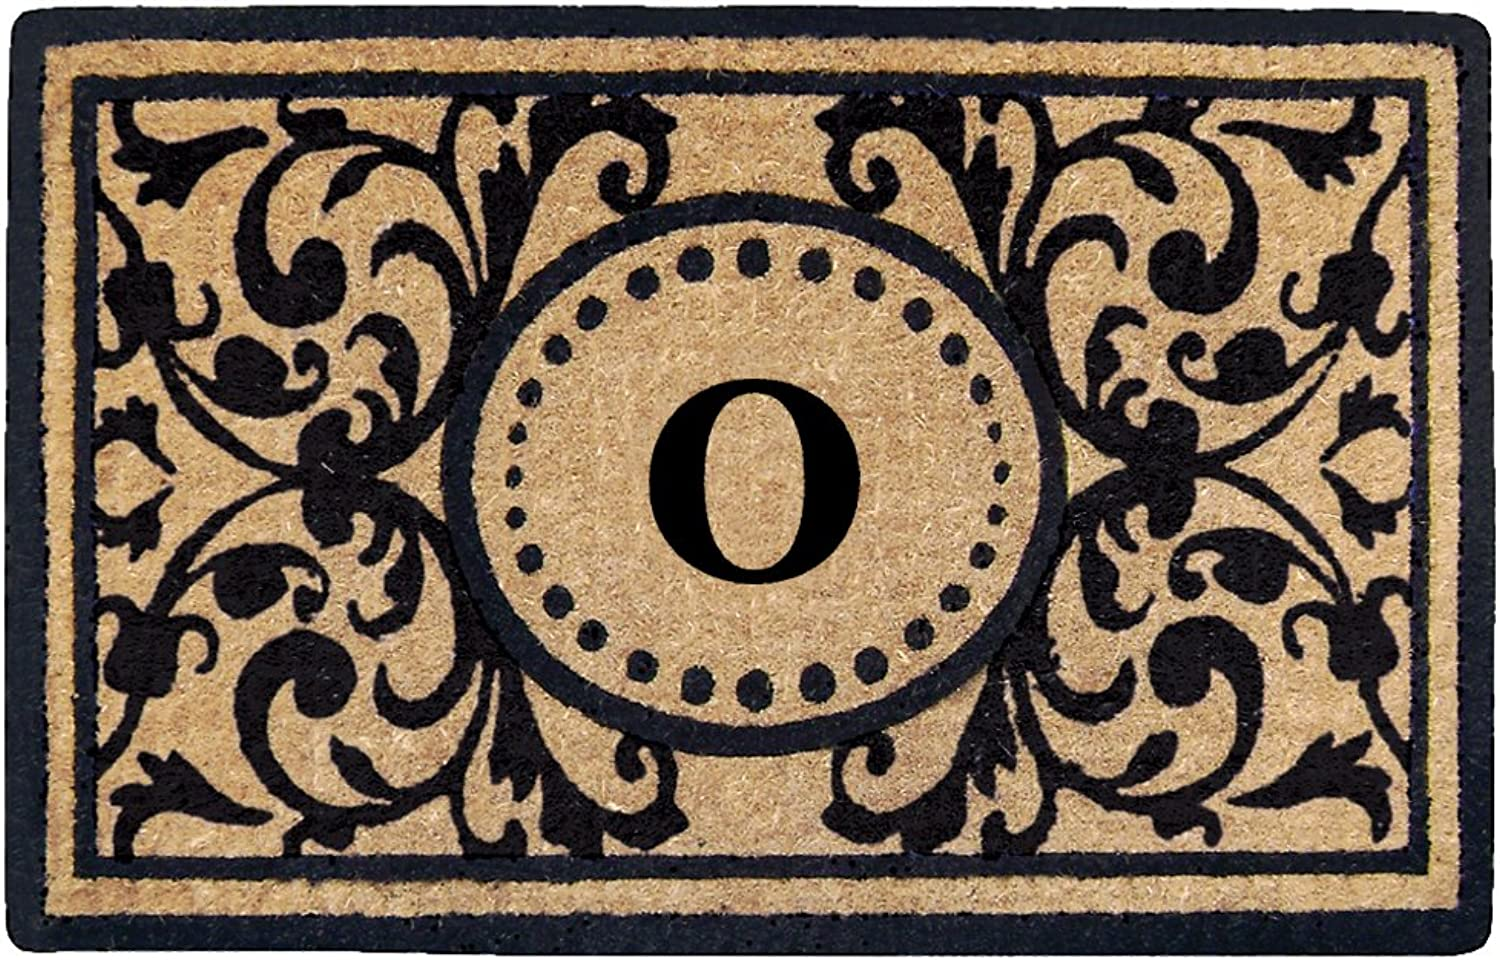 Creative Accents Heavy Duty Heritage Coco Mat, Monogrammed O, 18 x 30